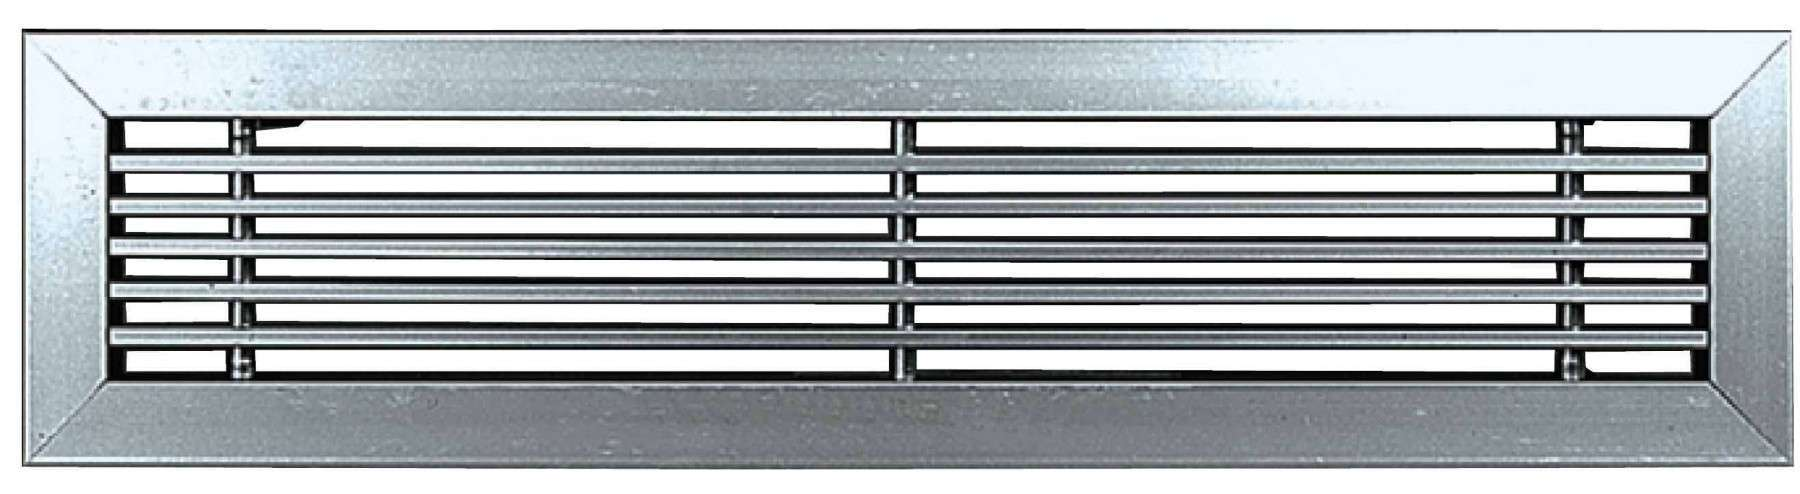 GLF 800X100 BLANC UNELVENT GRILLE A MAILLES FIXES 850219